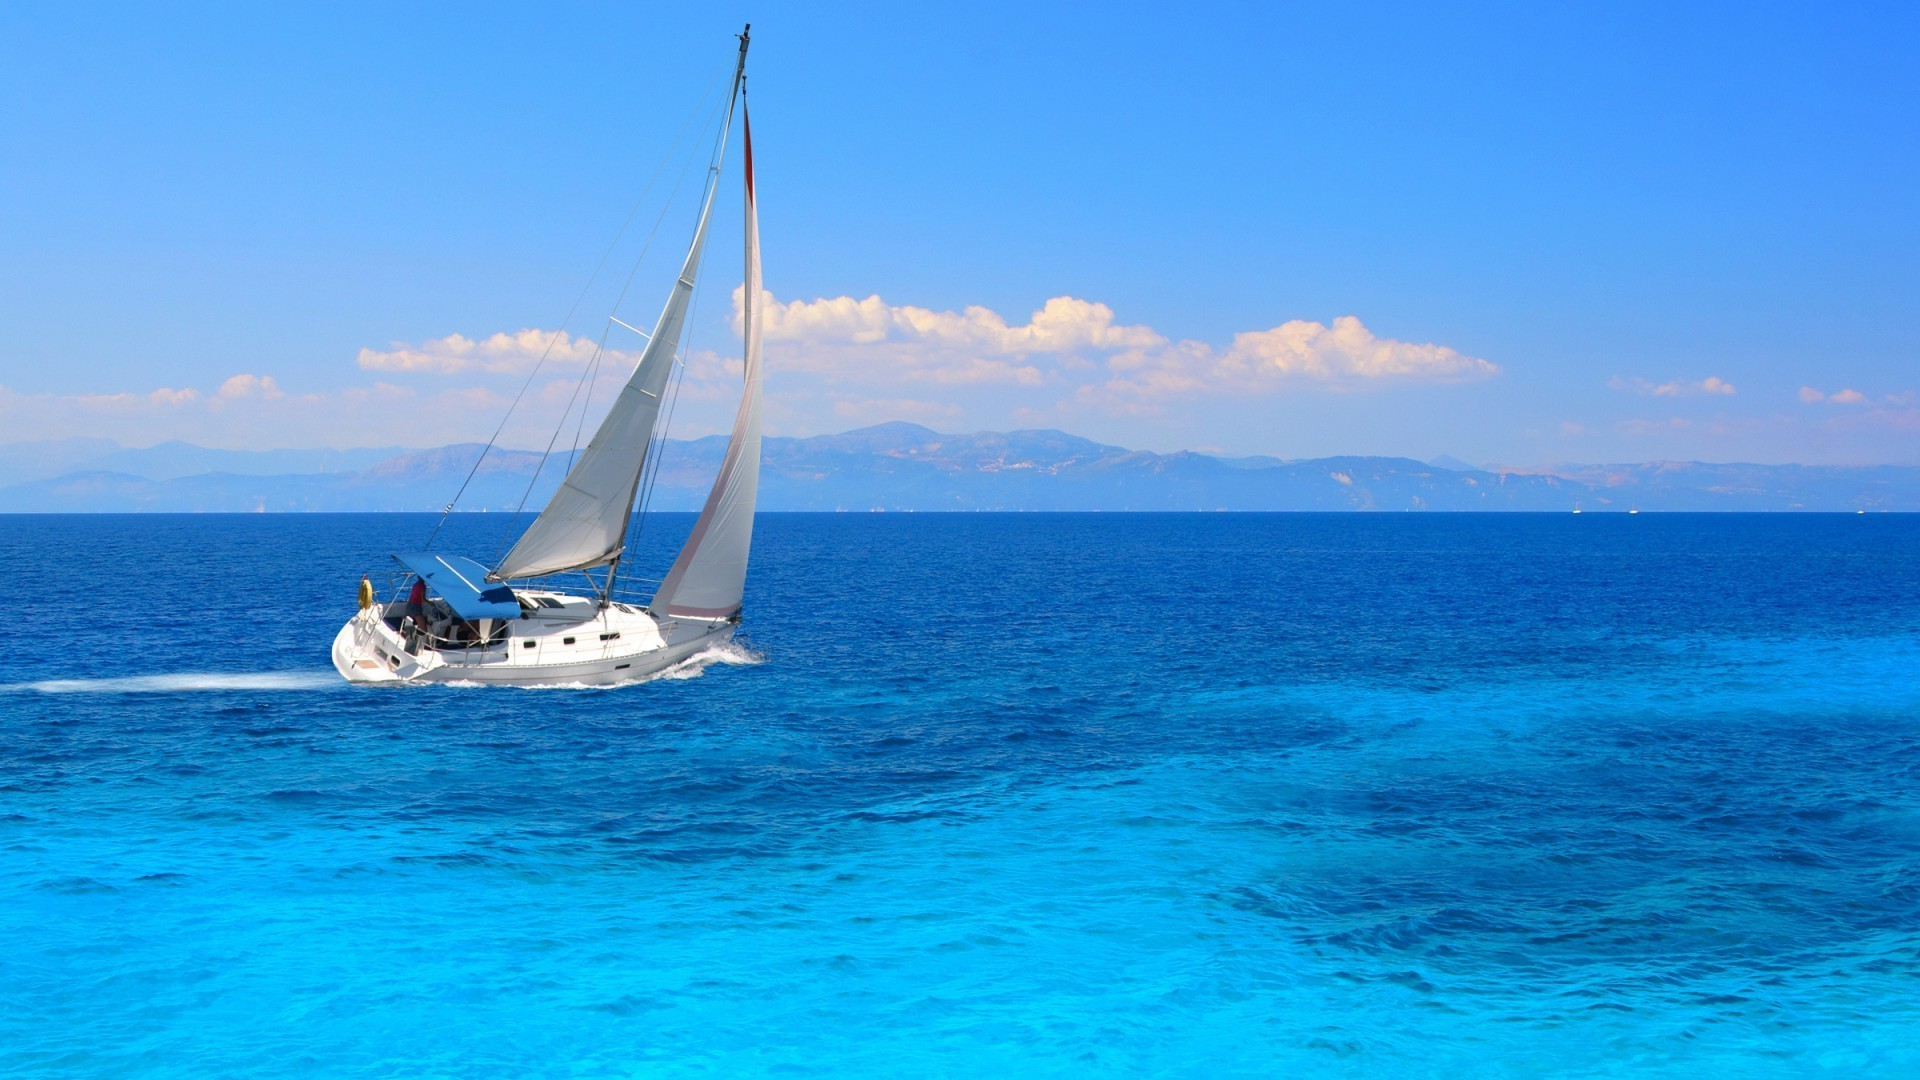 sea and ocean sea water ocean travel watercraft sailboat summer seashore seascape vacation beach recreation yacht island sky sail turquoise boat leisure